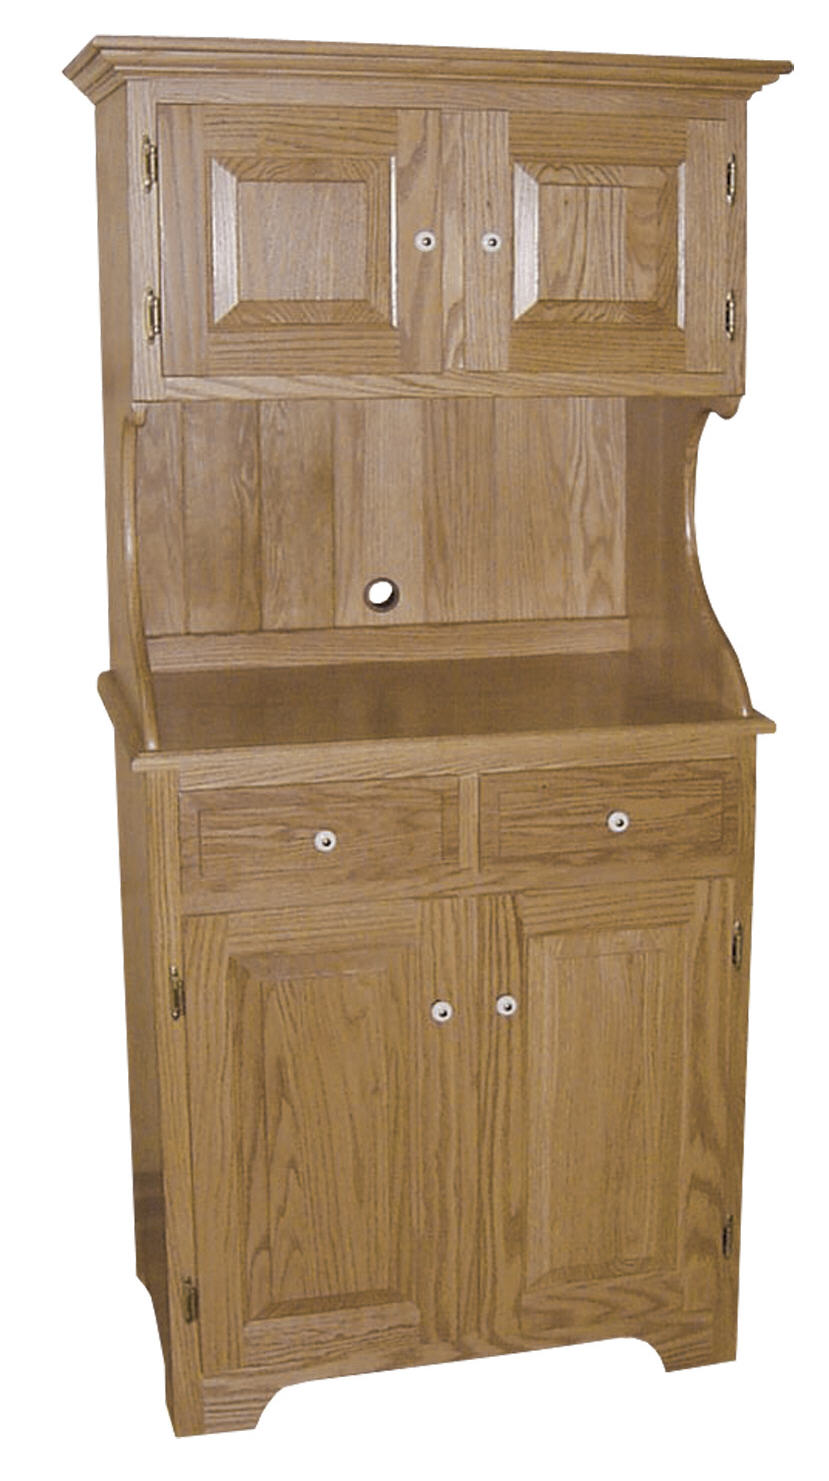 High back microwave cabinet 390 plw0136 88 o wood for Stone barn furnishings